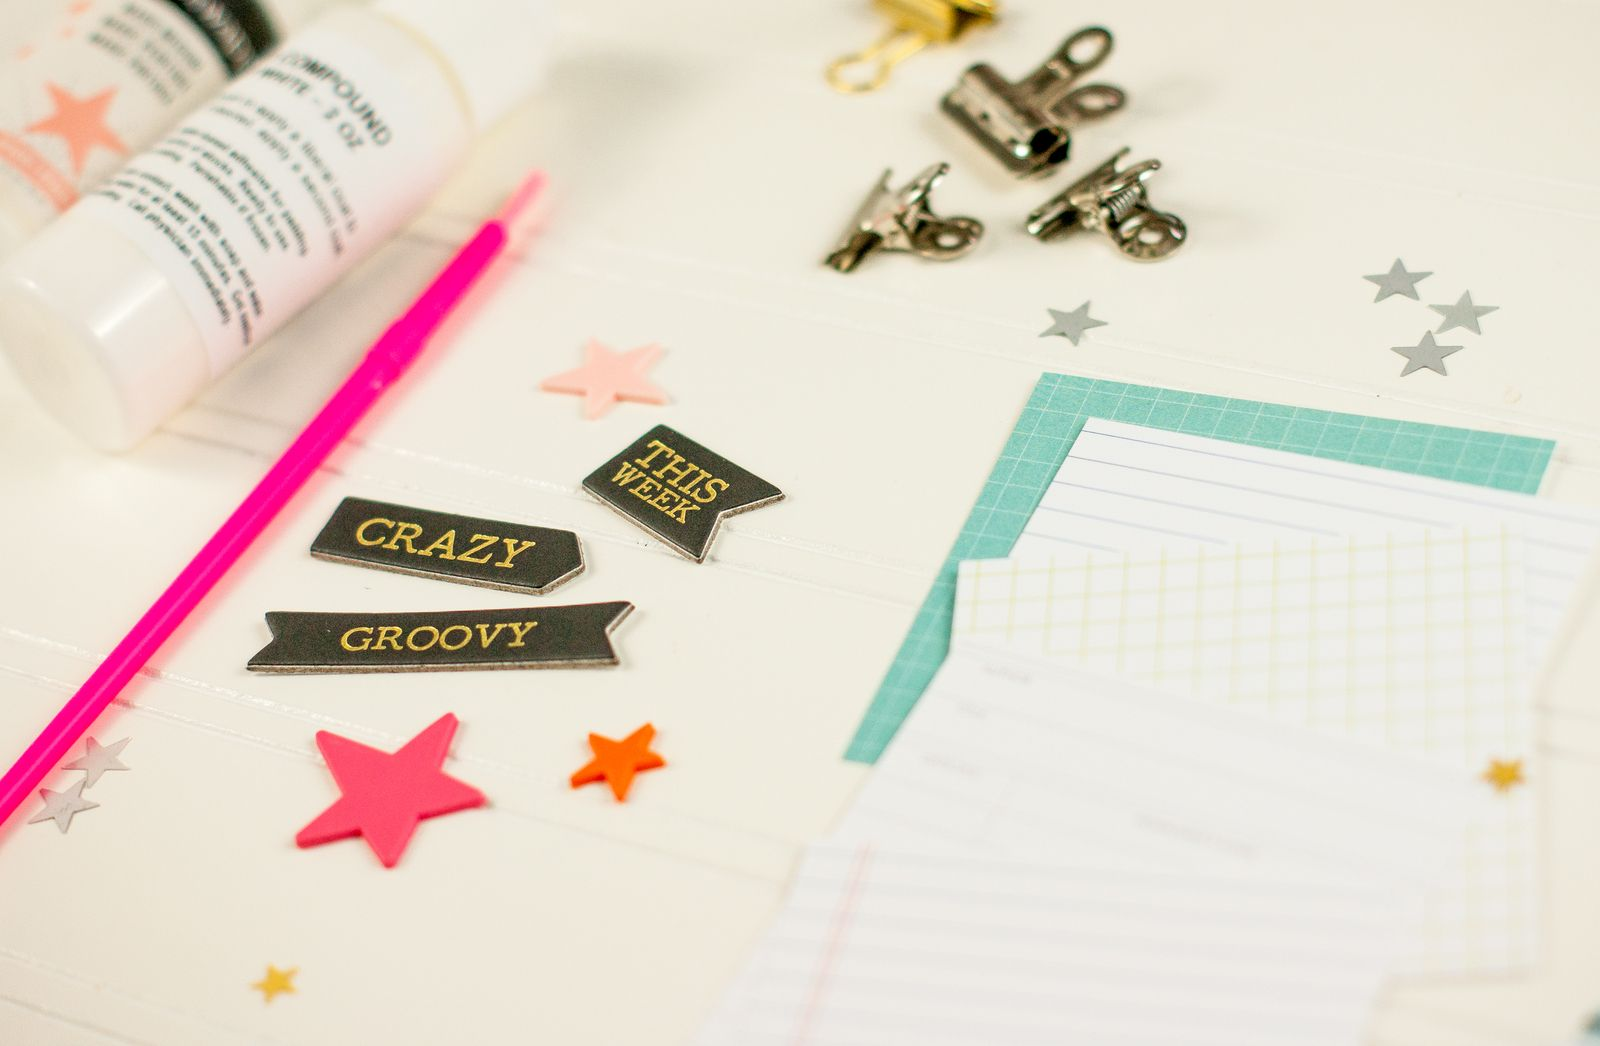 Hey everyone! Maggie here with a fun way to use up the extra supplies you may have in your Documenter Kits! Even though Christmas is over, there's no reason why you can't still give little gifts to your family and friends...especially to your crafty friends!